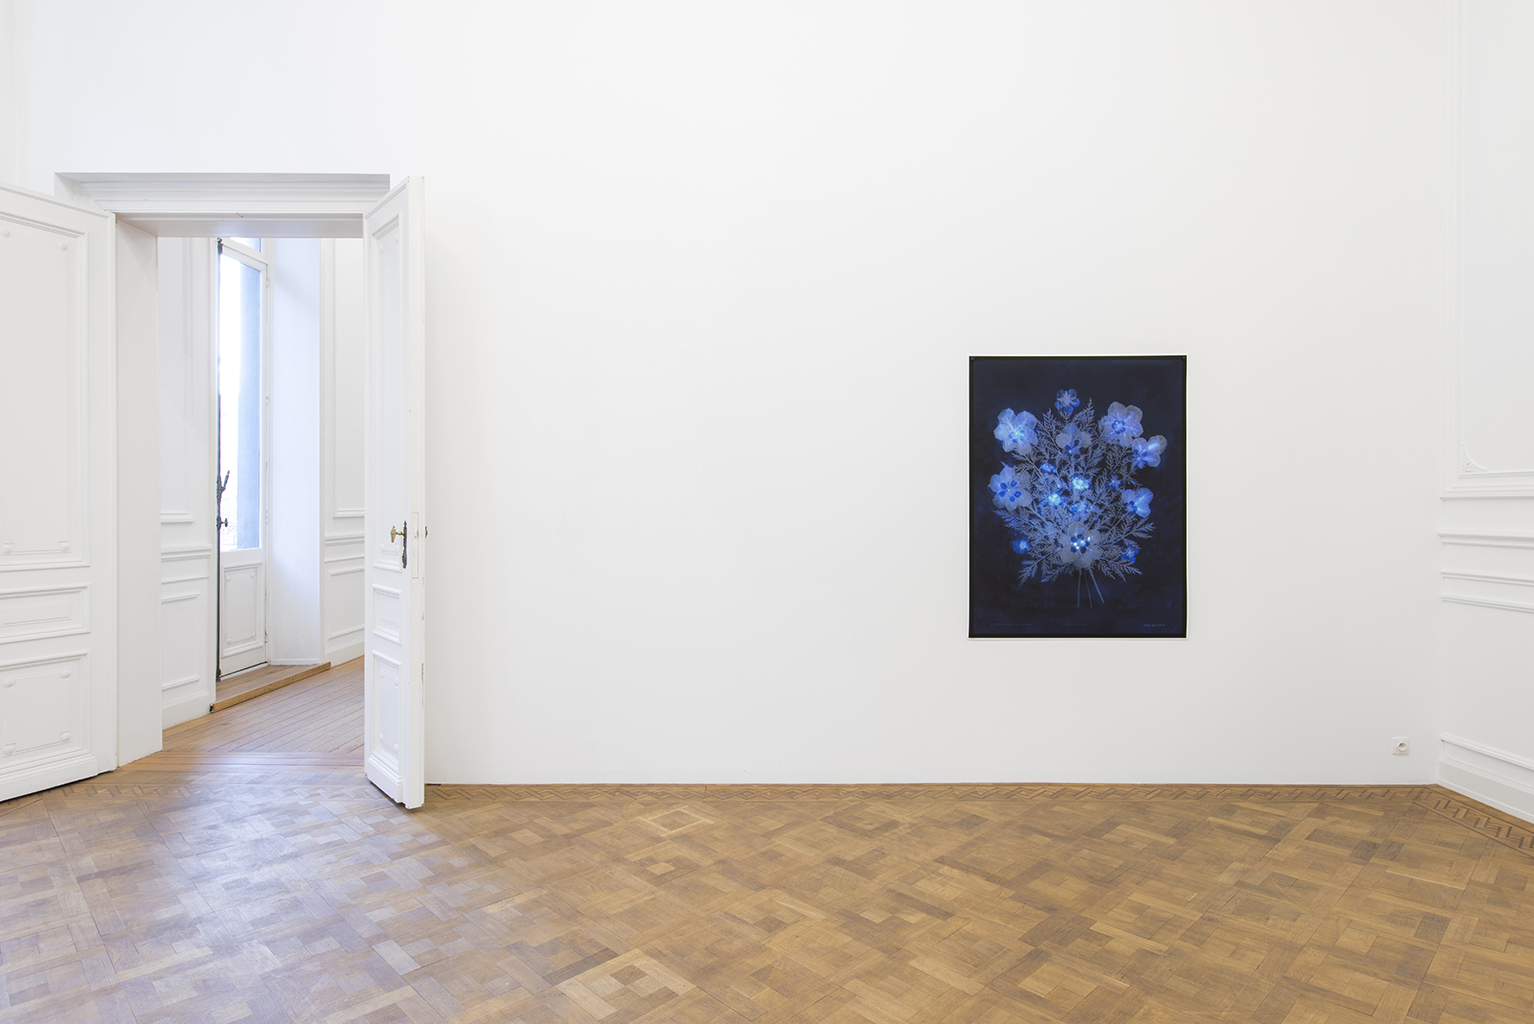 Lilies of the Field, Dvir Gallery